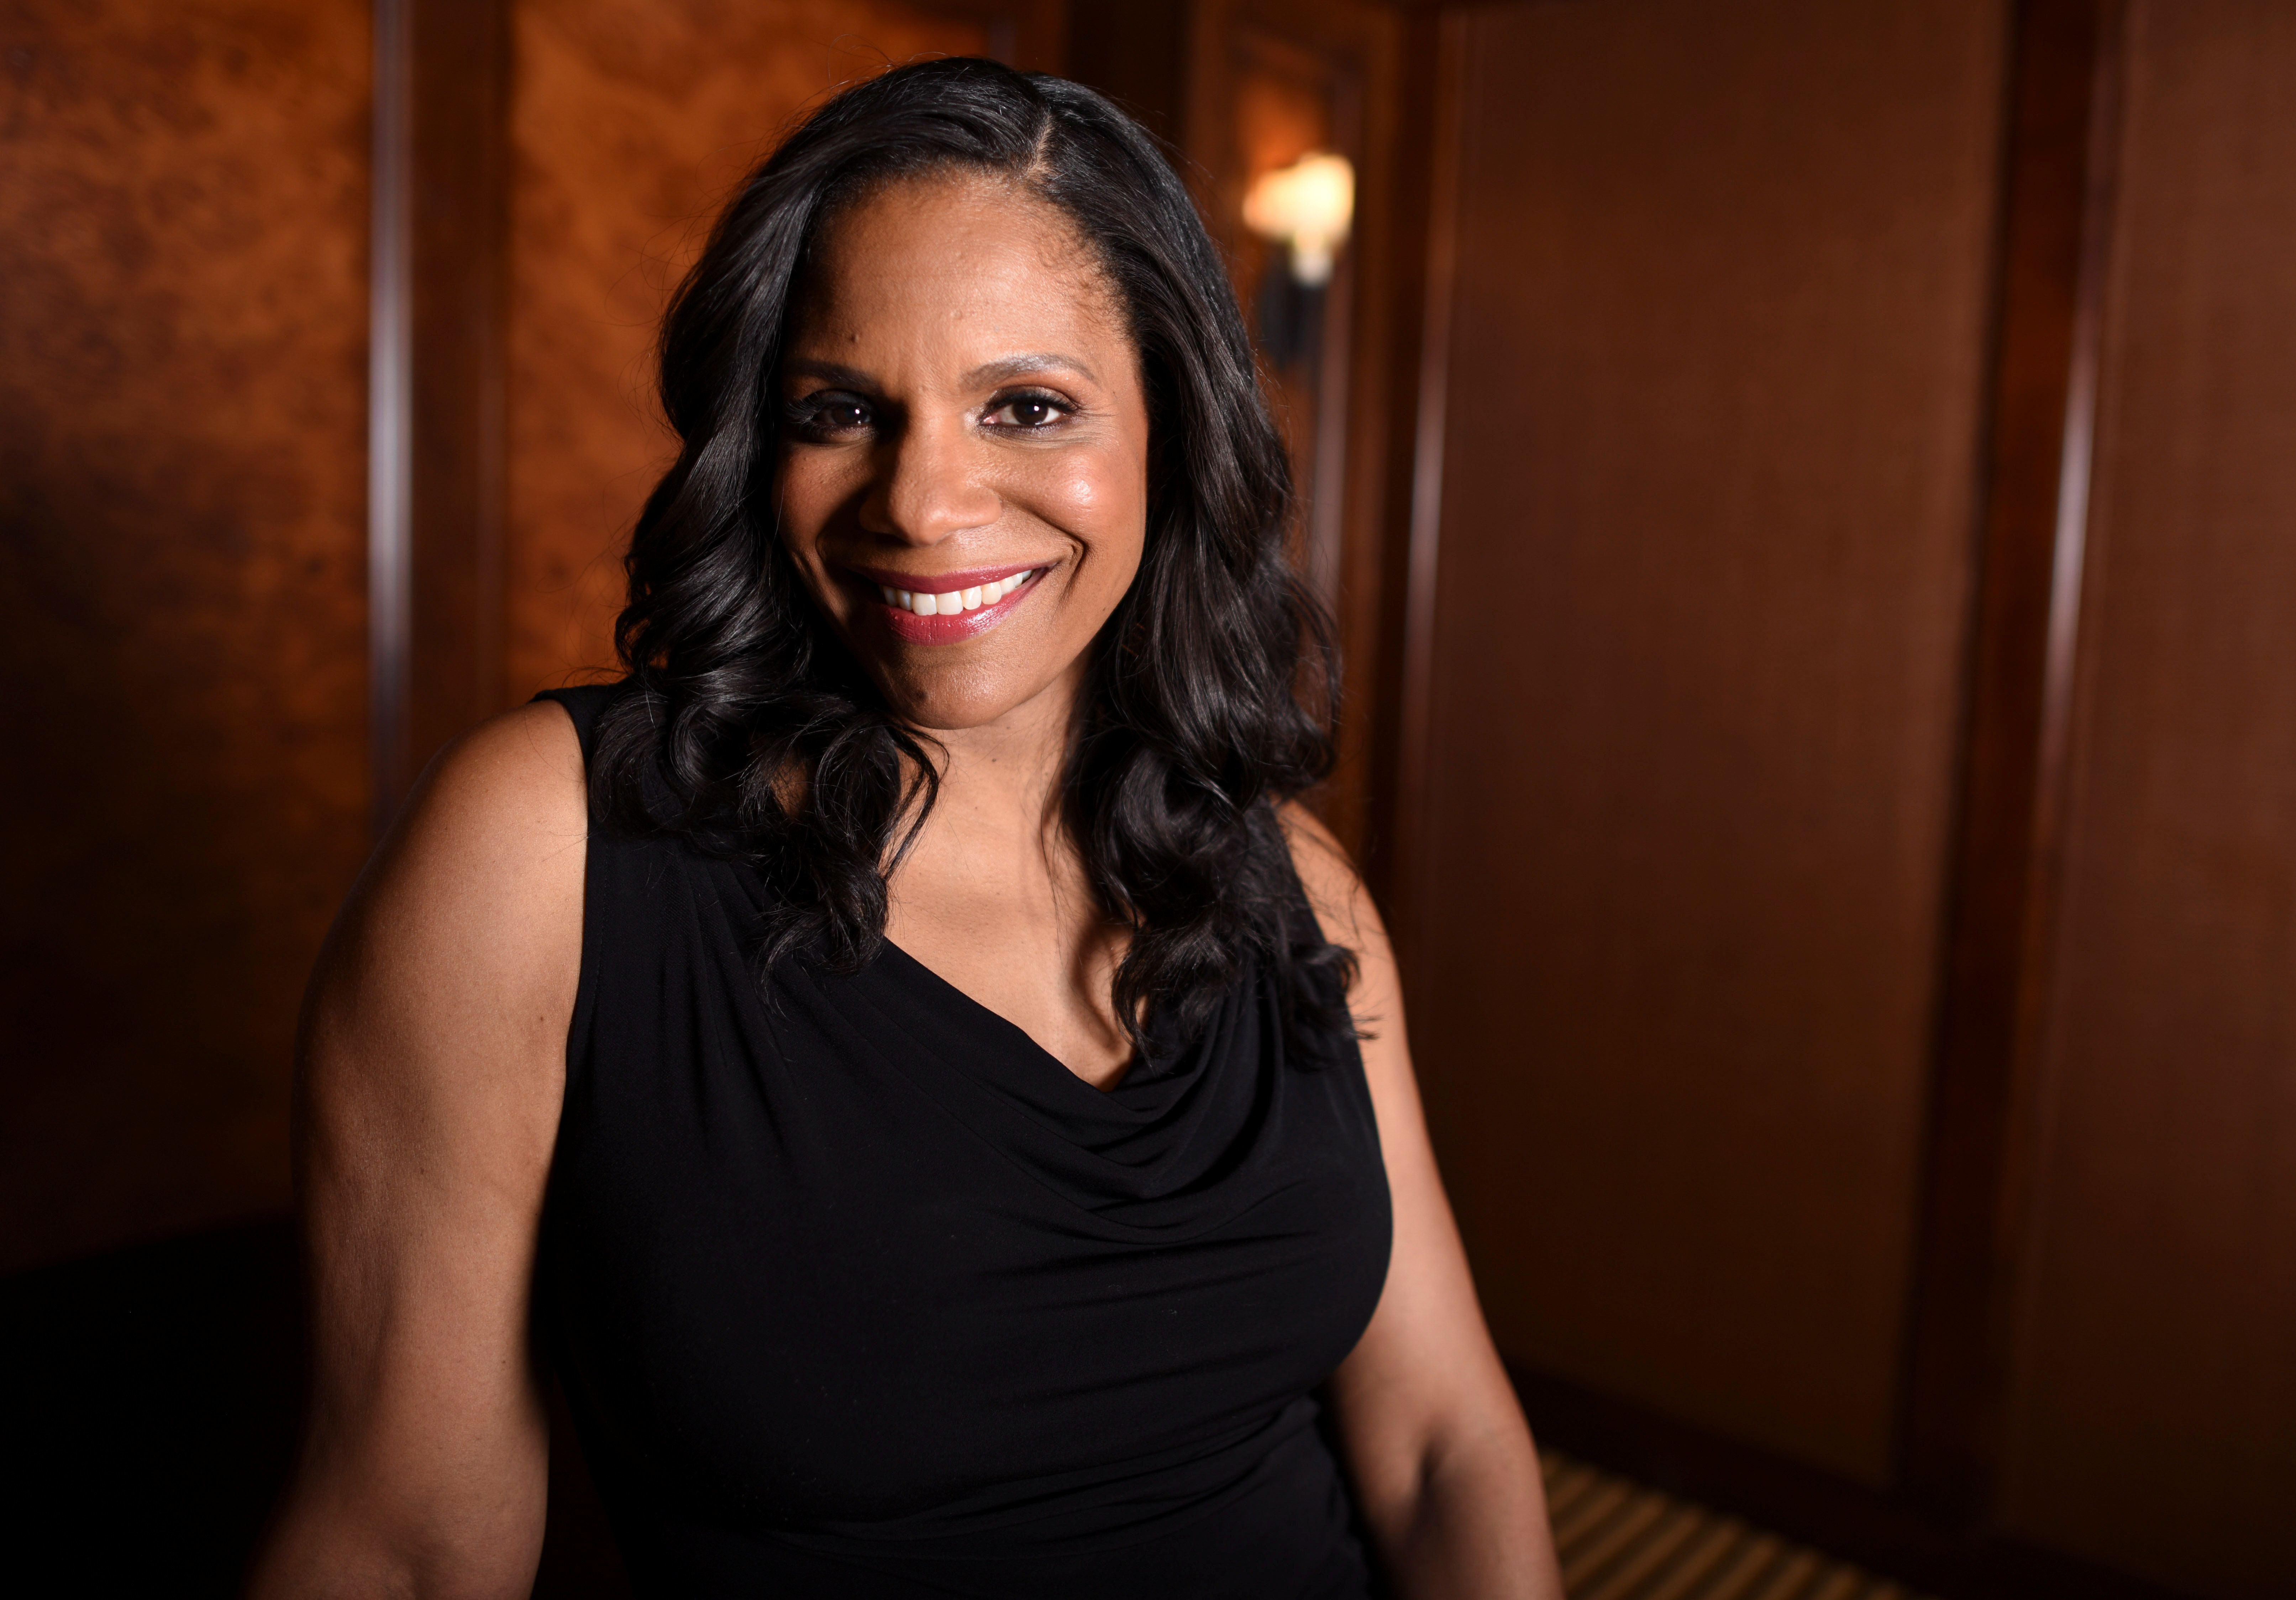 Singer-actress Audra McDonald has been an outspoken advocate for the LGBTQ community for years.